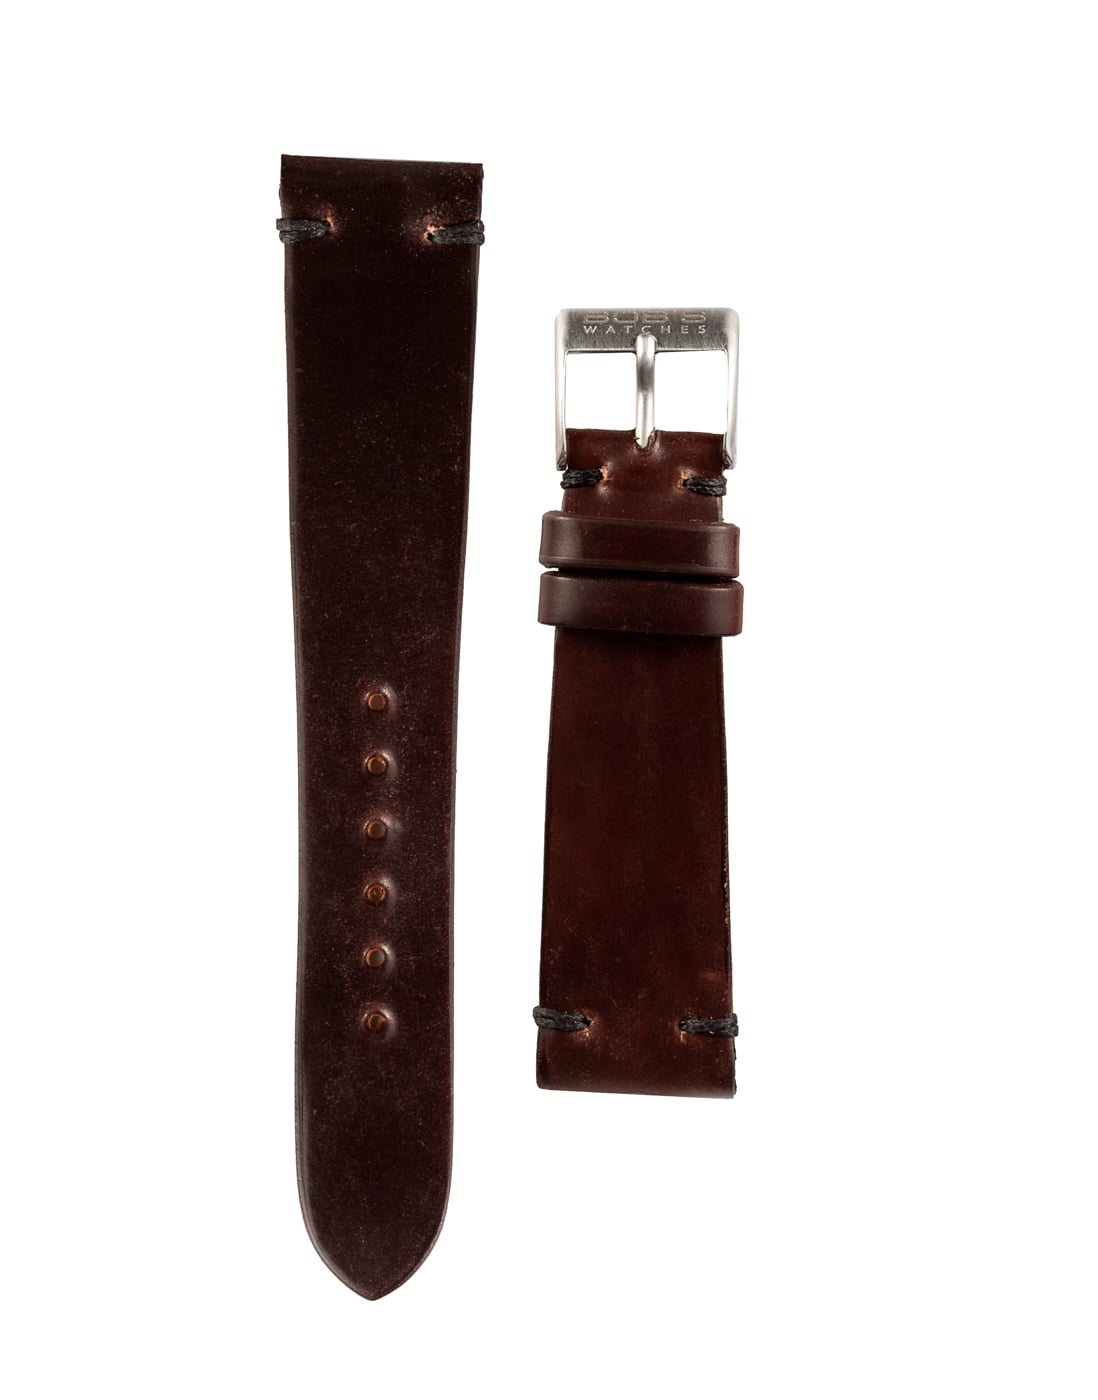 watch themed gifts for men accessories Italian leather strap